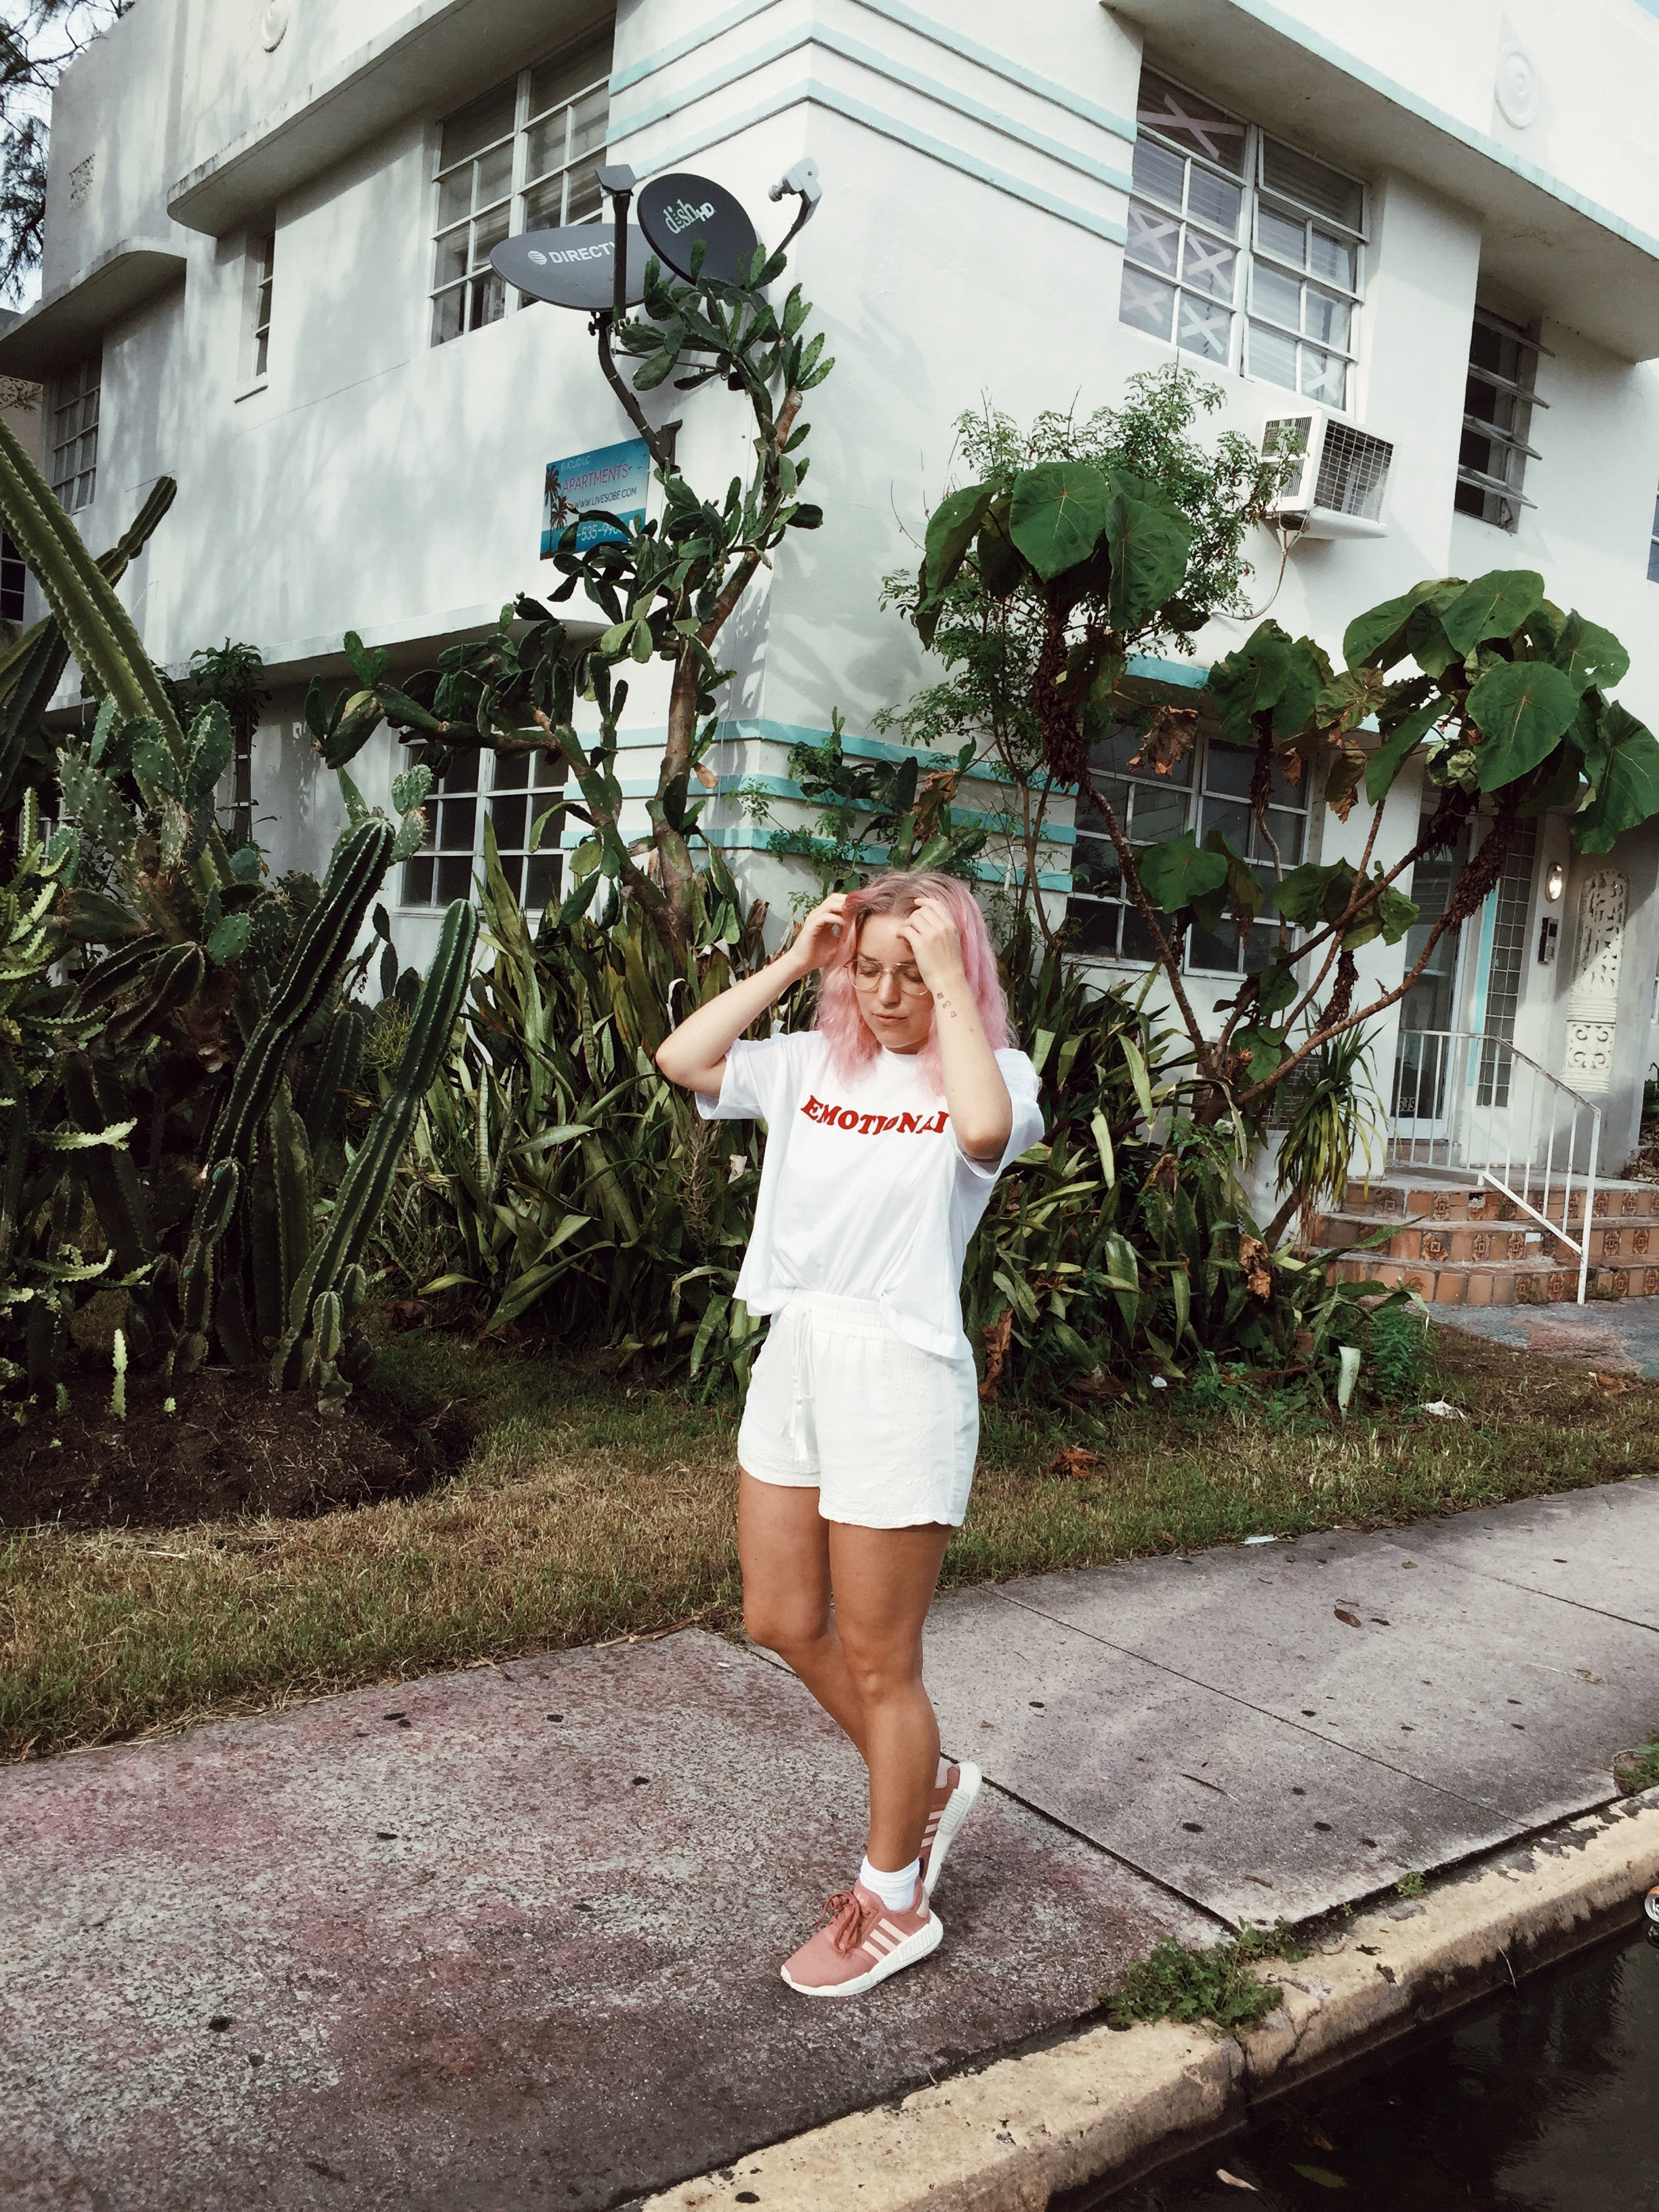 Miami Beach travel diaries, South Beach, Miami Beach in pictures, Florida vacation, outfit of the day, ootd, adidas originals, pastel hair,